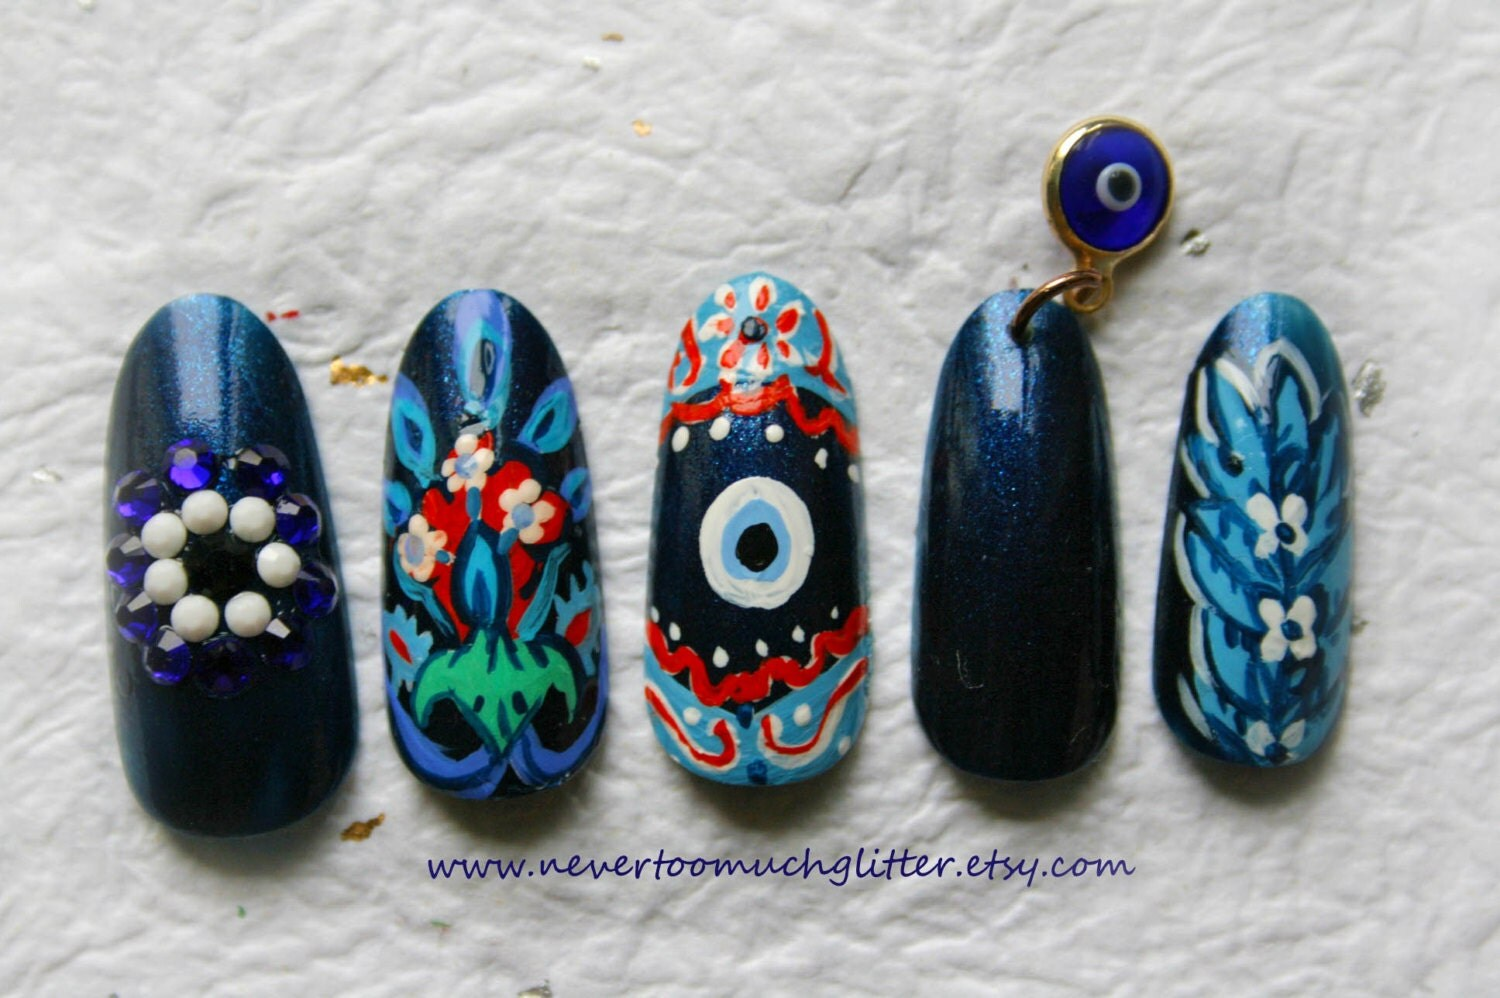 Evil eye fake nails deluxe evil eye nails japanese nail art evil eye fake nails deluxe evil eye nails japanese nail art handpainted turkish press on nails evil eye press on evil eye nail art prinsesfo Image collections